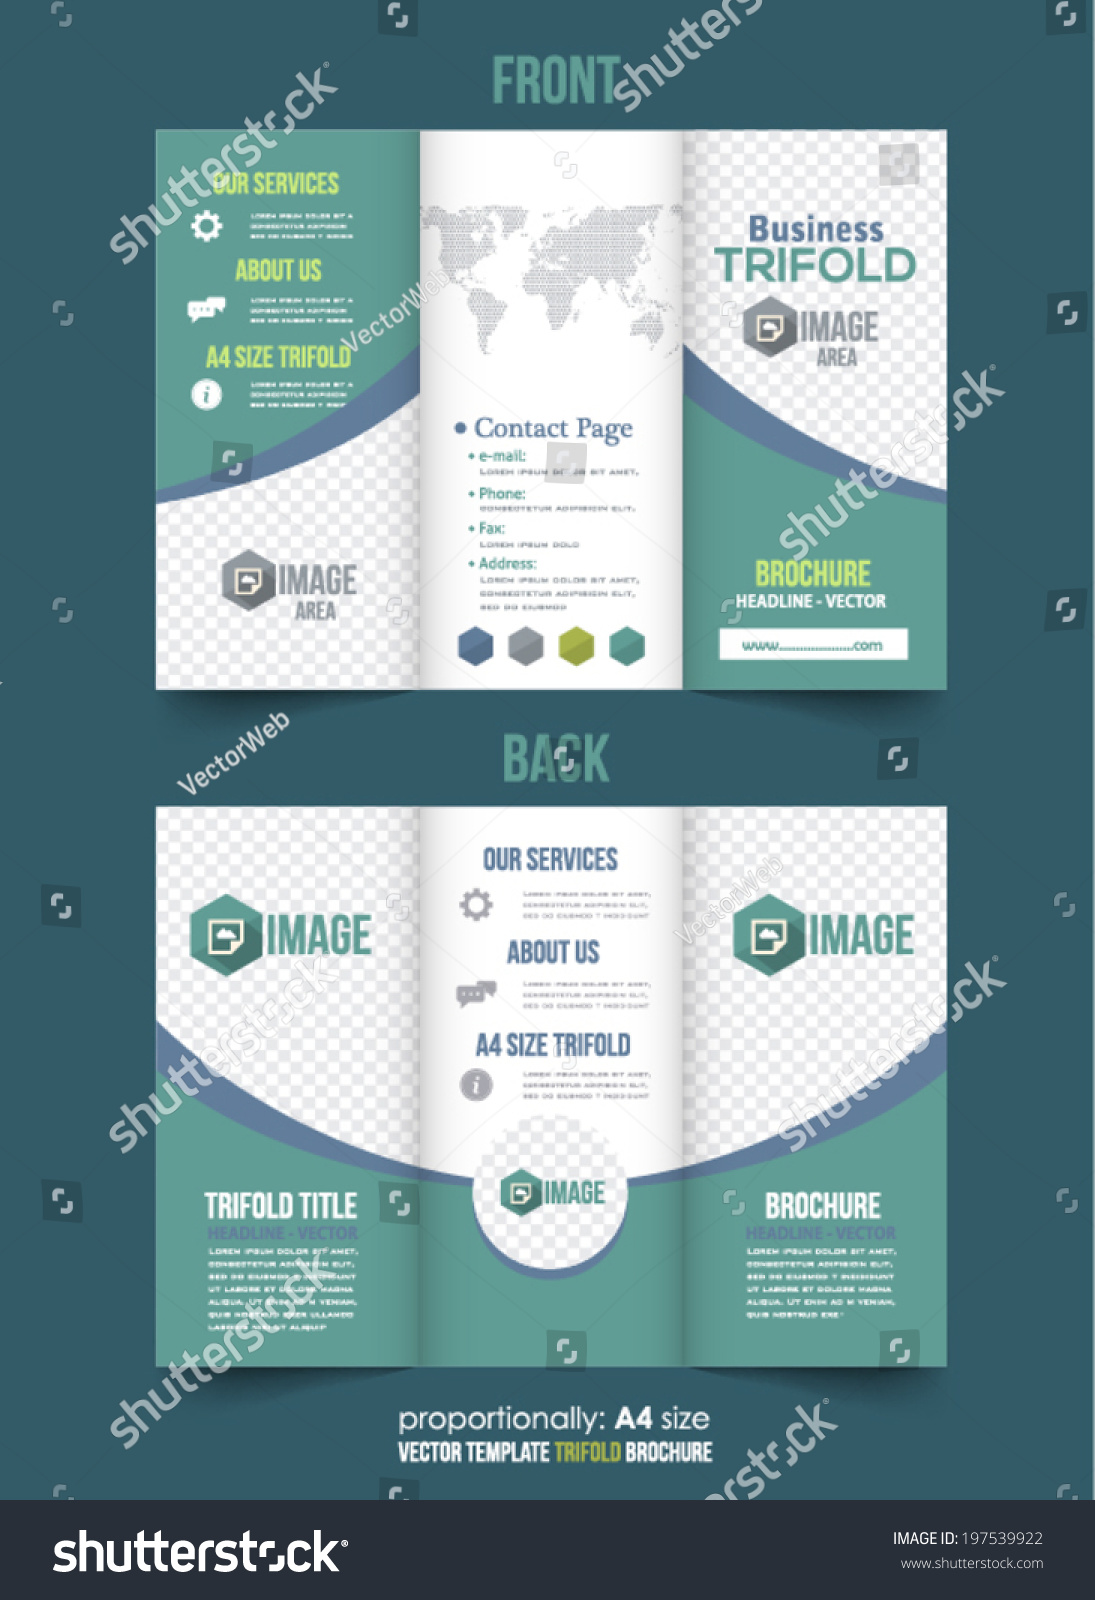 Lovely 10 Best Resume Designs Tall 100 Free Resume Builder And Download Round 100 Template 18th Birthday Invitations Templates Young 2 Binder Spine Template Yellow2 Weeks Notice Template Trifold Brochure Catalog Vector Design Template Stock Vector ..